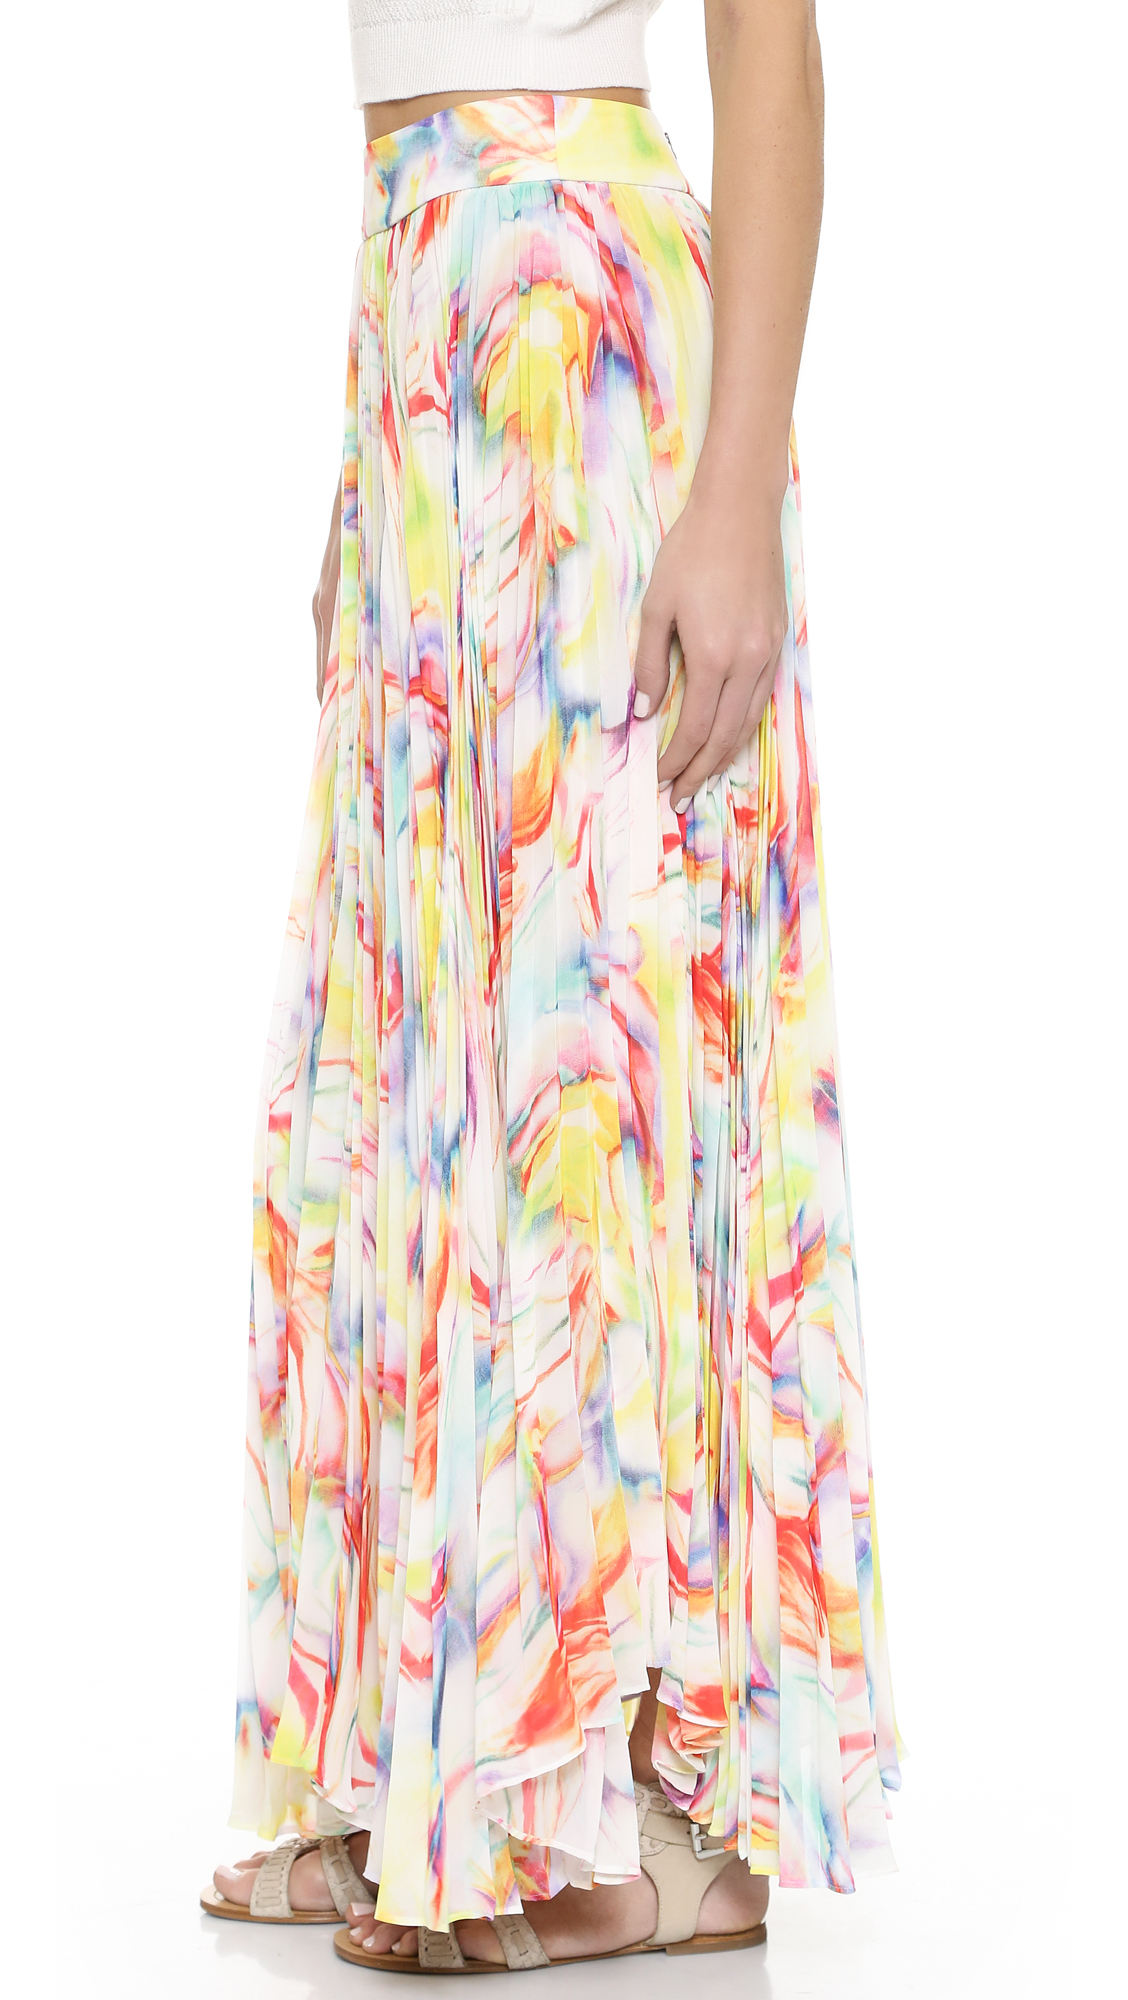 Alice olivia pleated maxi dress